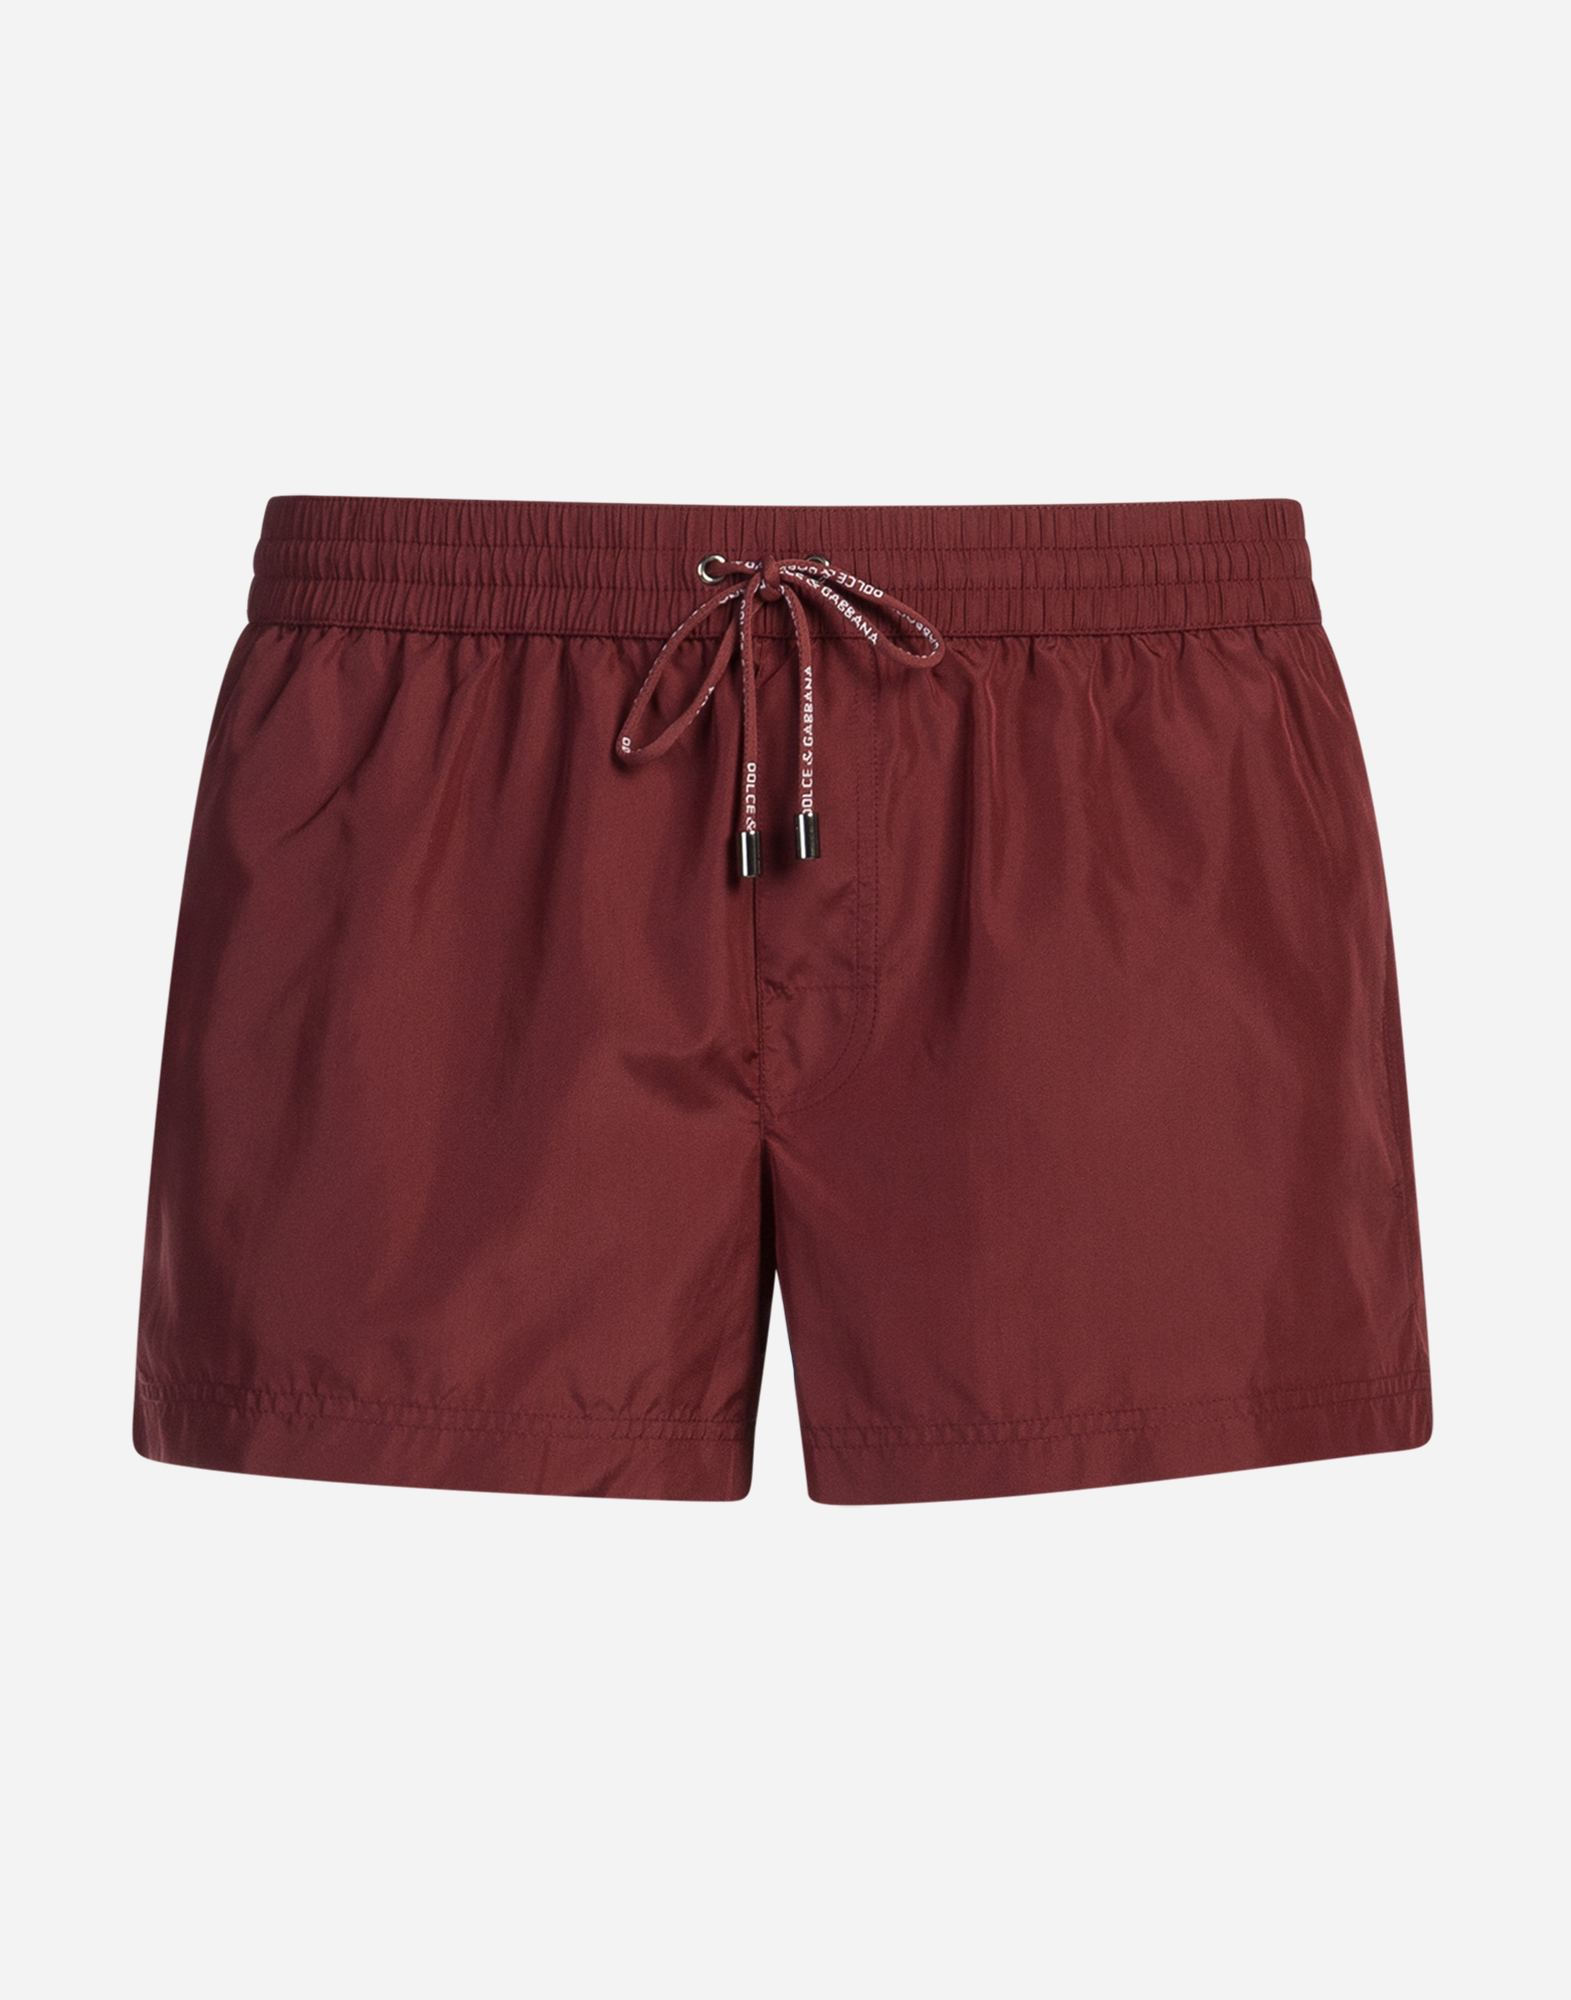 SHORT SWIMMING TRUNKS